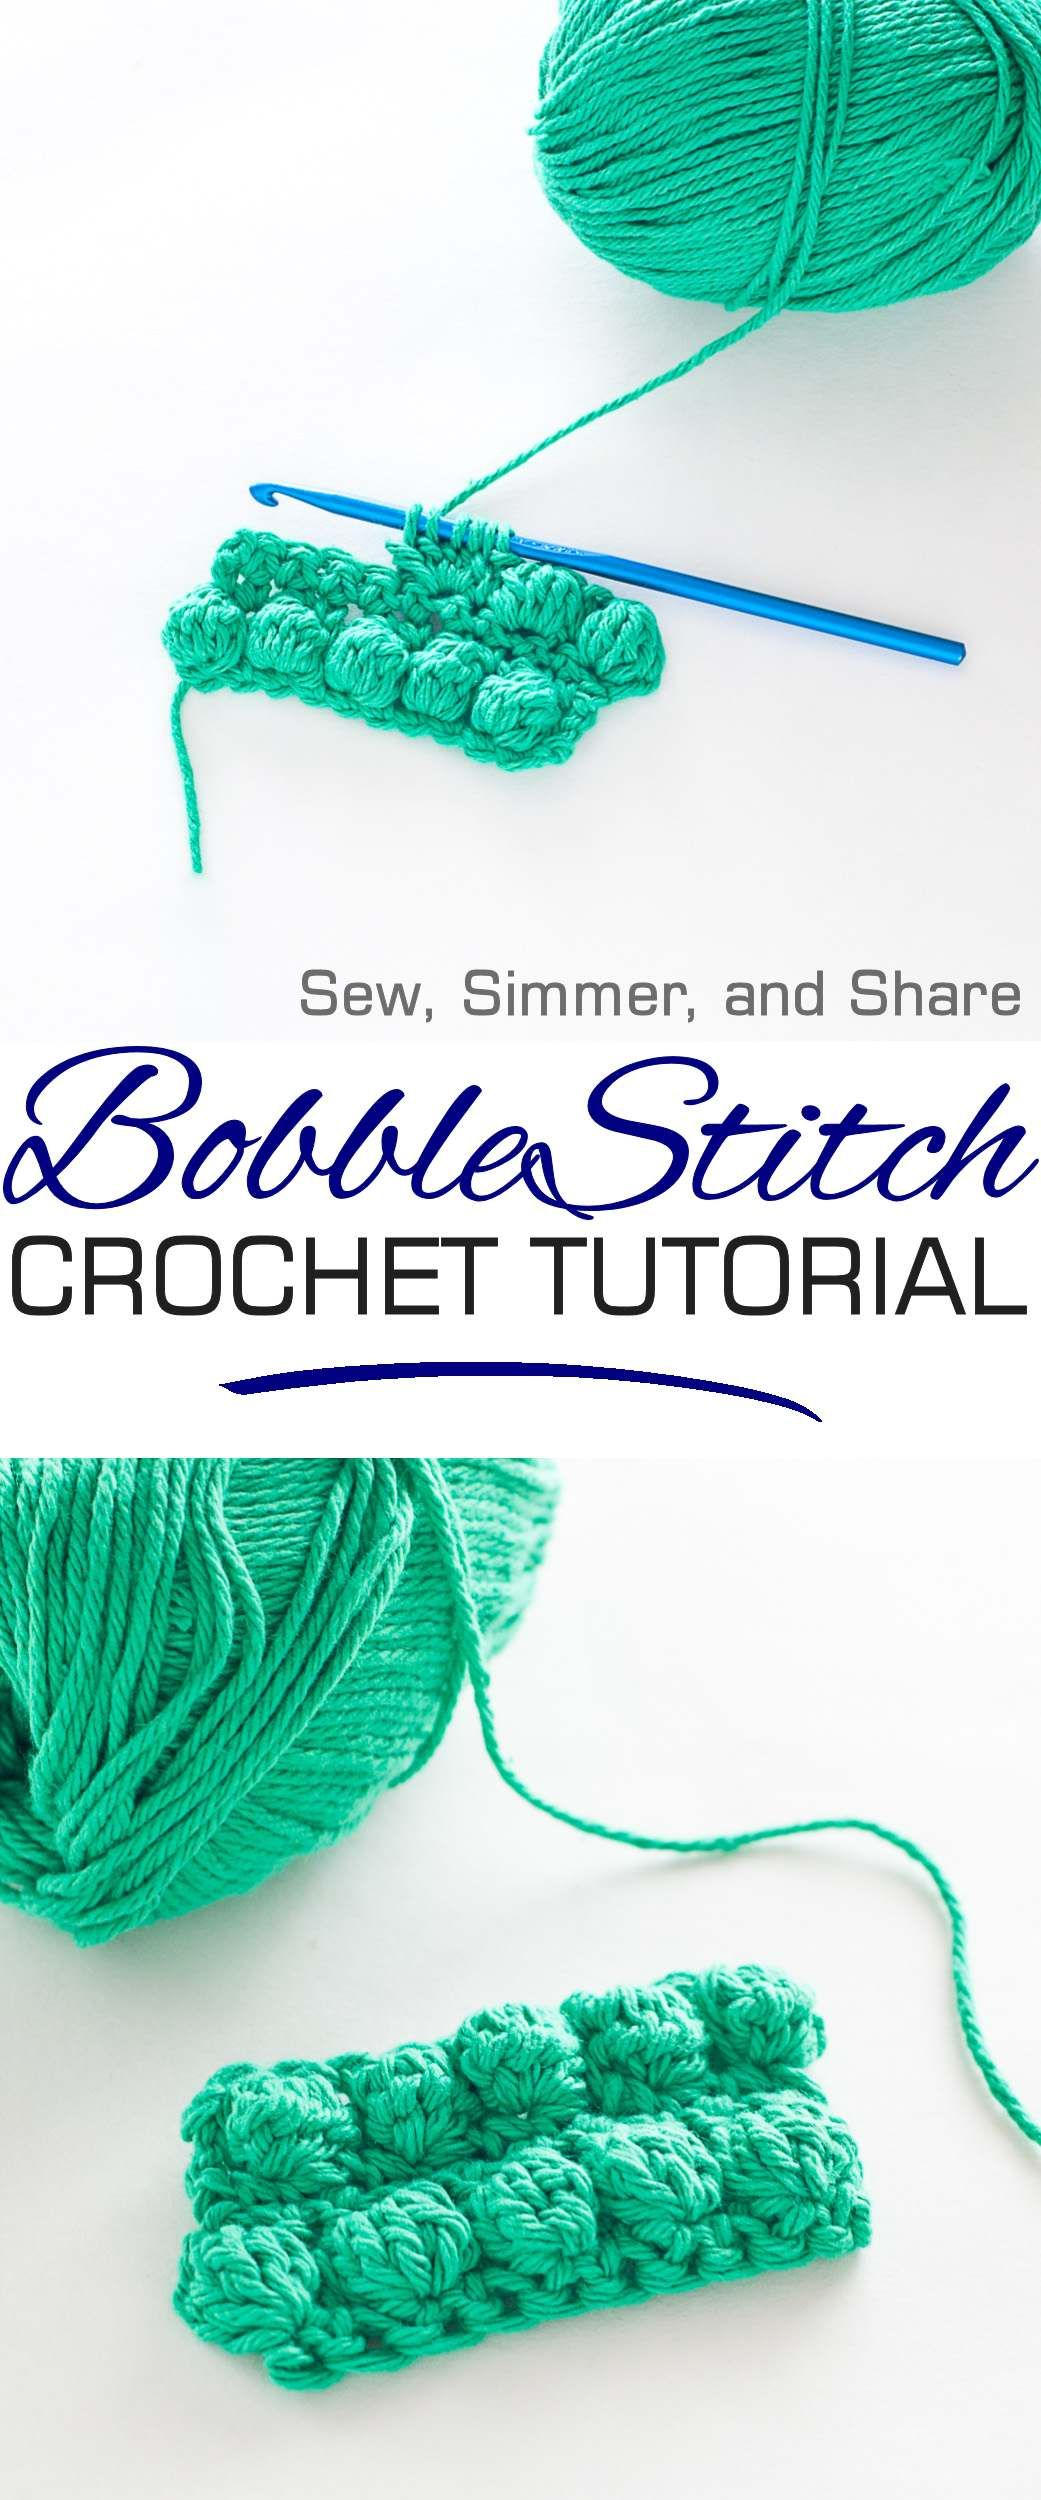 How to Crochet the Bobble Stitch | Yarn | Pinterest | Bobble stitch ...